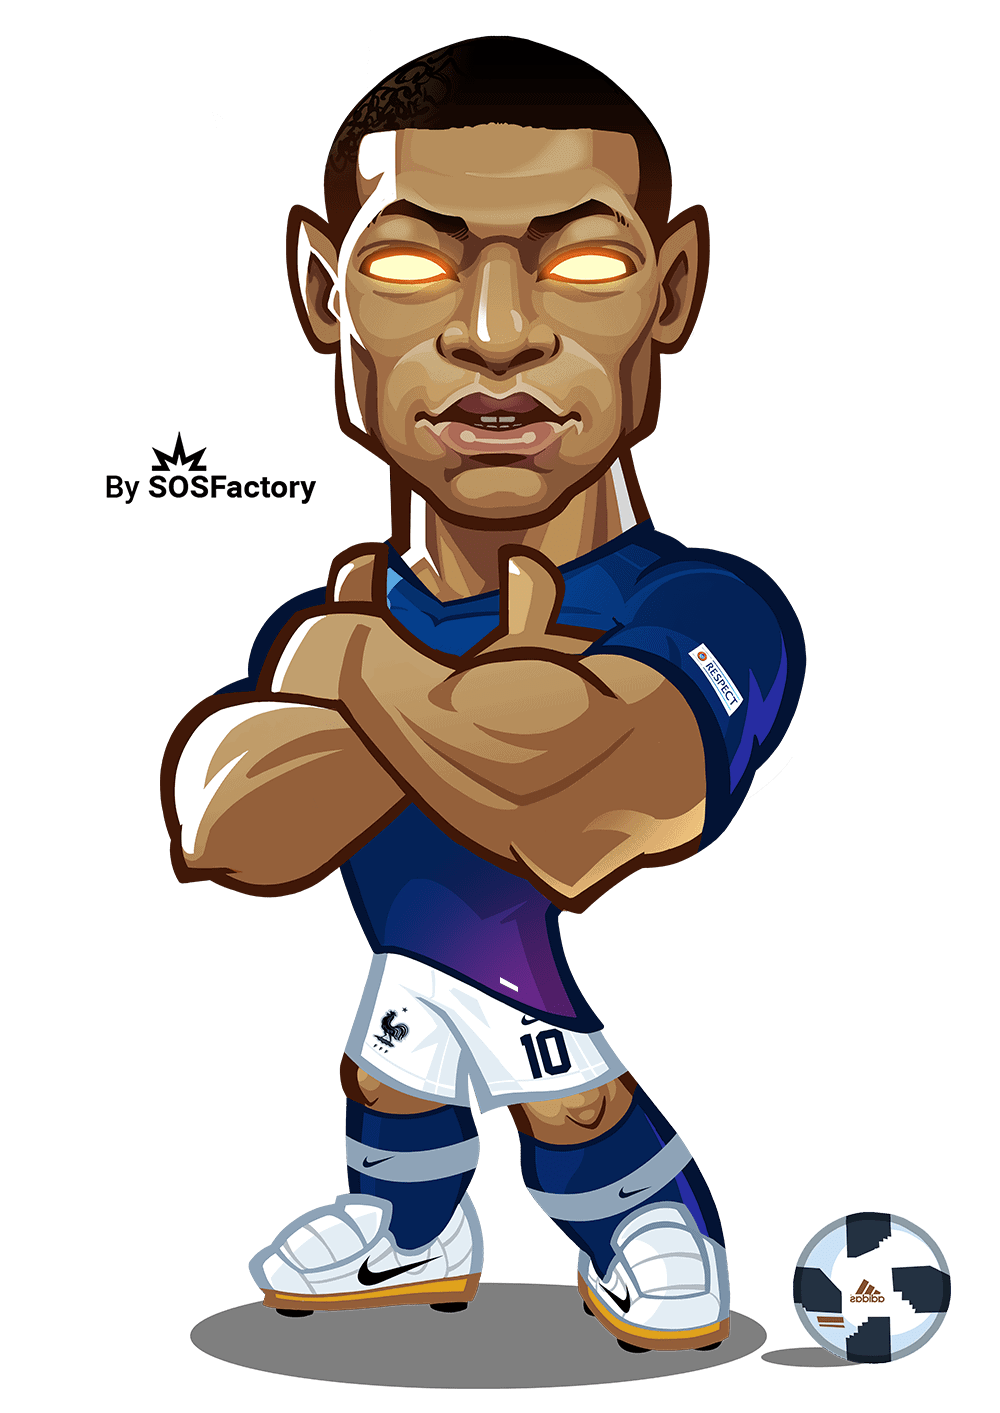 mbappe caricature